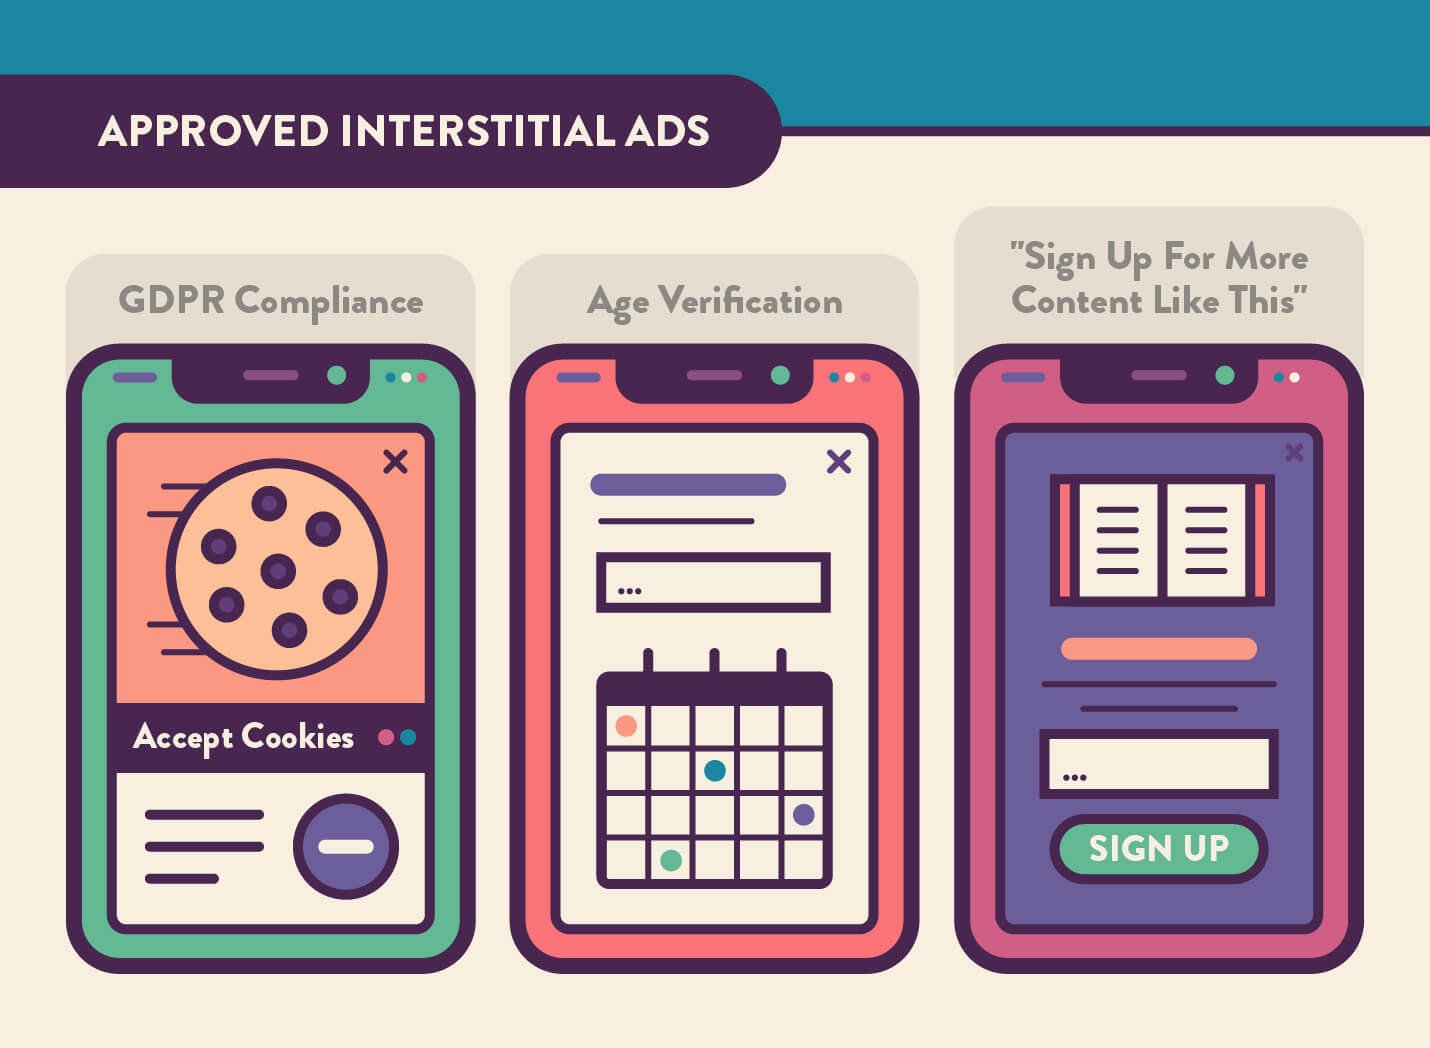 approved and legally required interstitial ad prompts